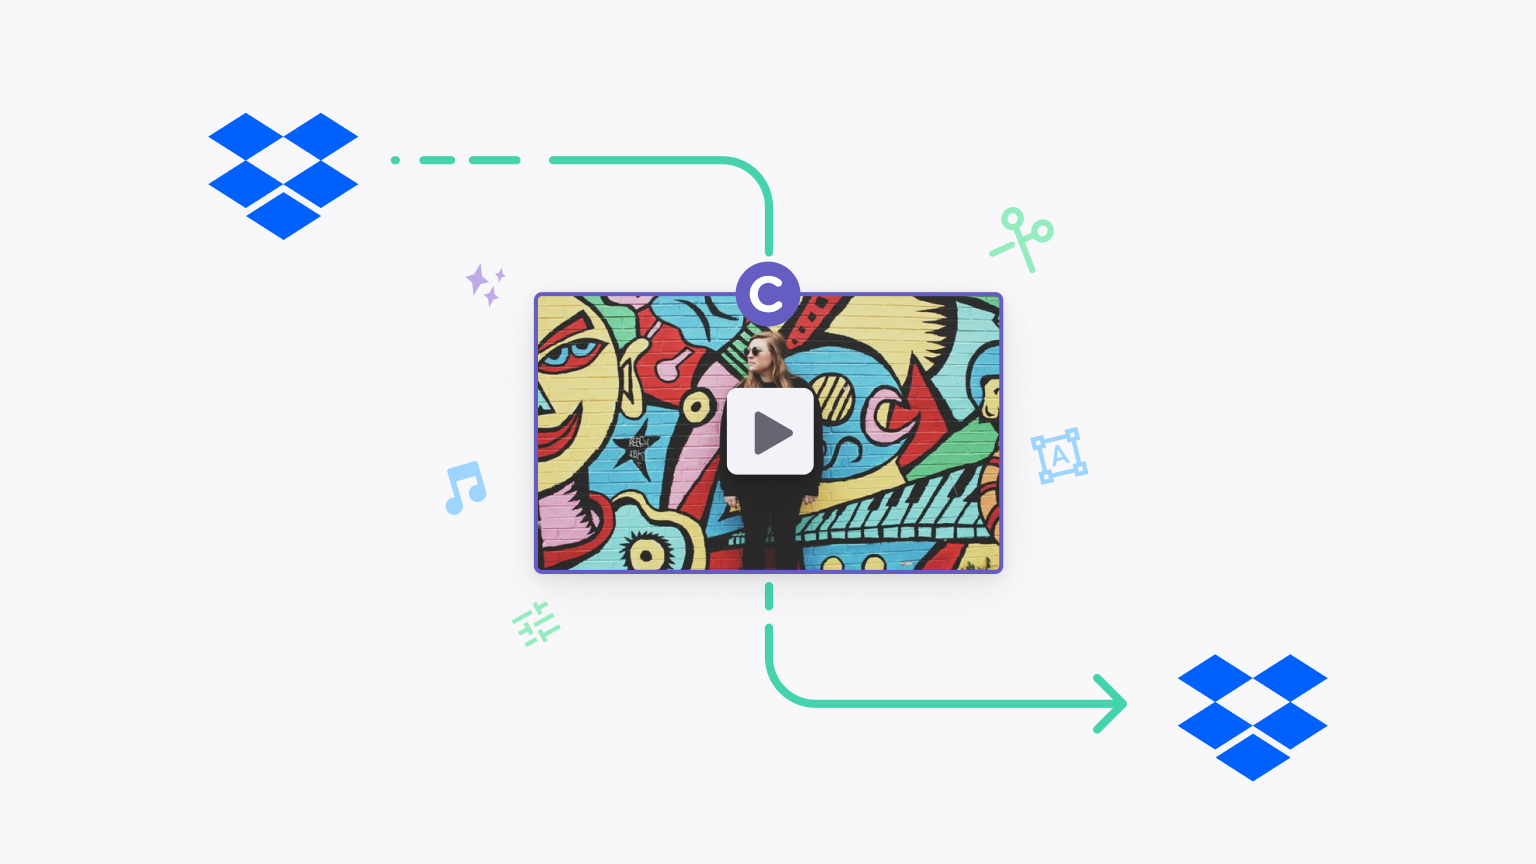 A dropbox logo with an arrow pointing to a video that has a Clipchamp logo over it with another arrow going out pointing to another Dropbox logo. It's meant to depict data flowing from Dropbox to Clipchamp back to Dropbox.